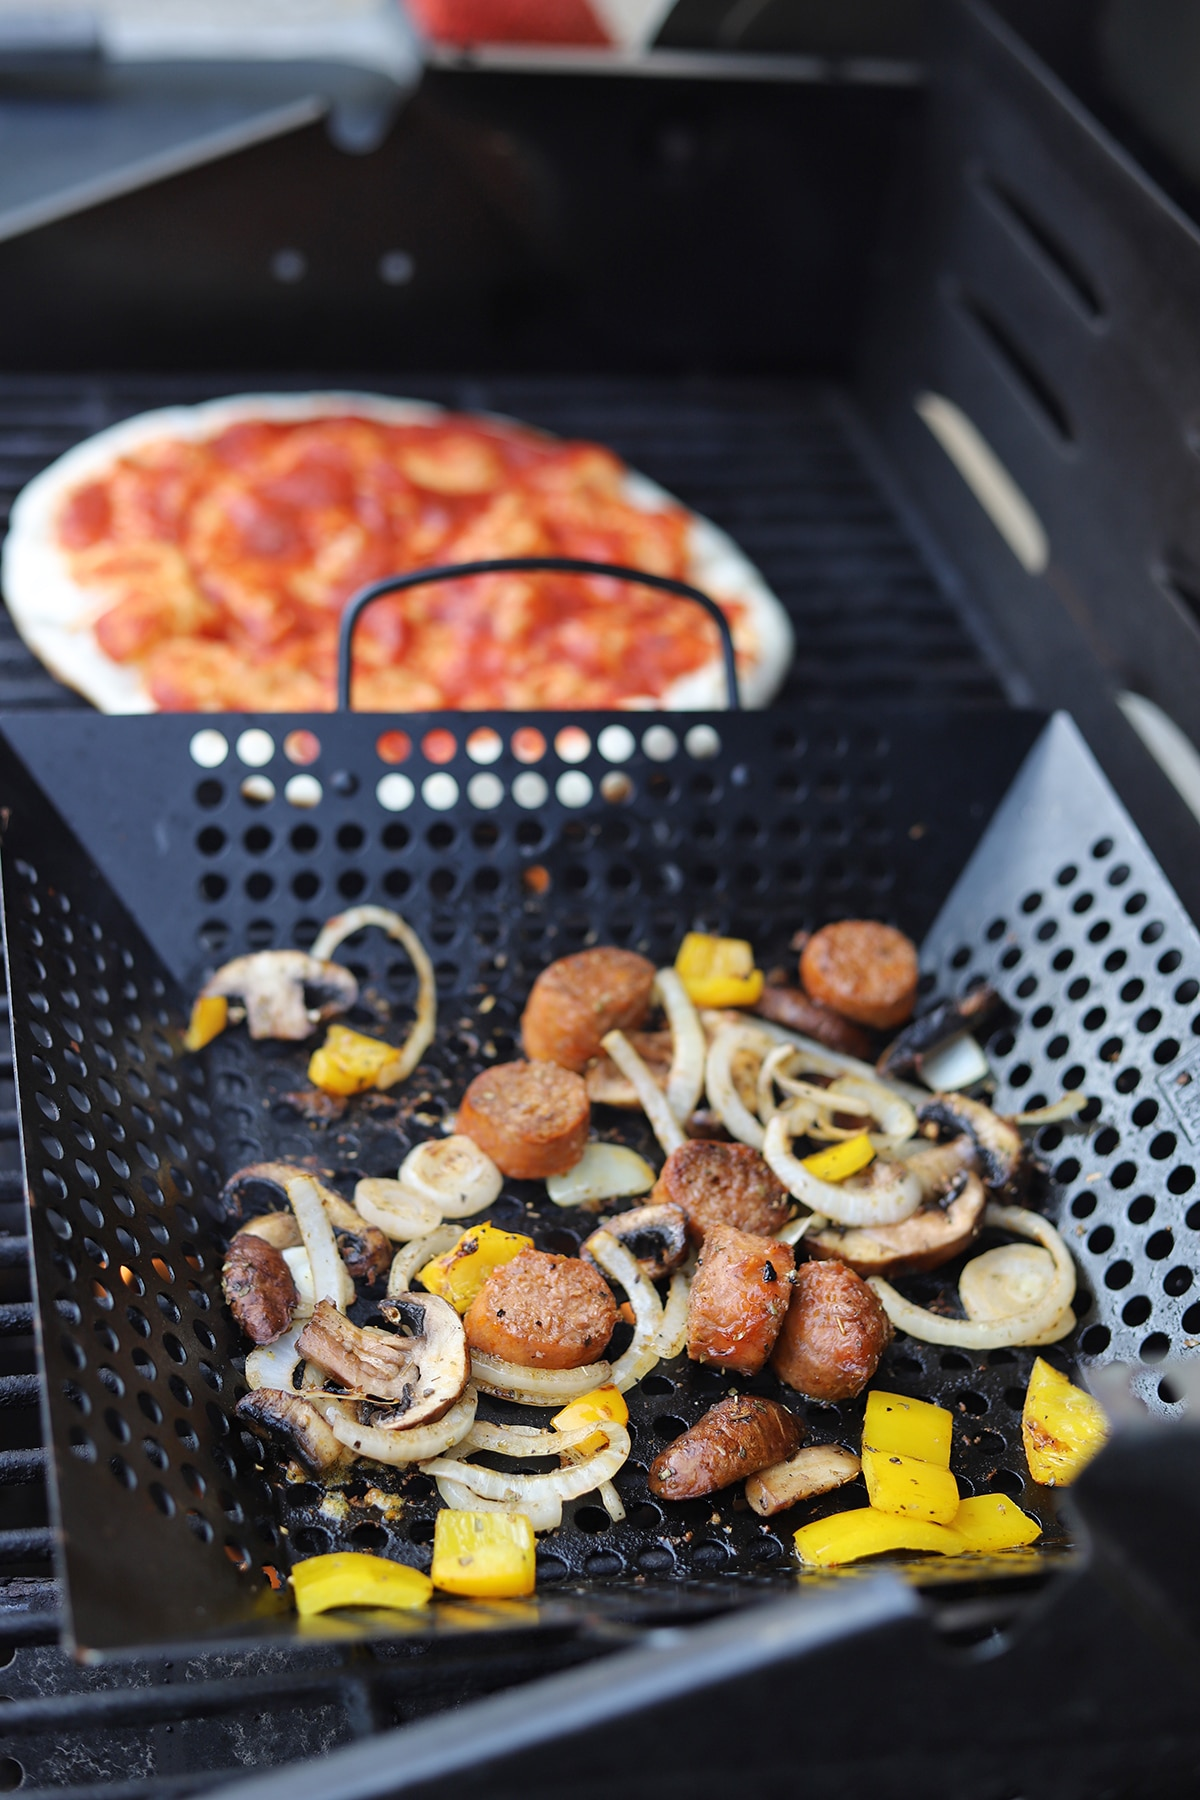 Grill basket with vegetables and pizza crust in background.